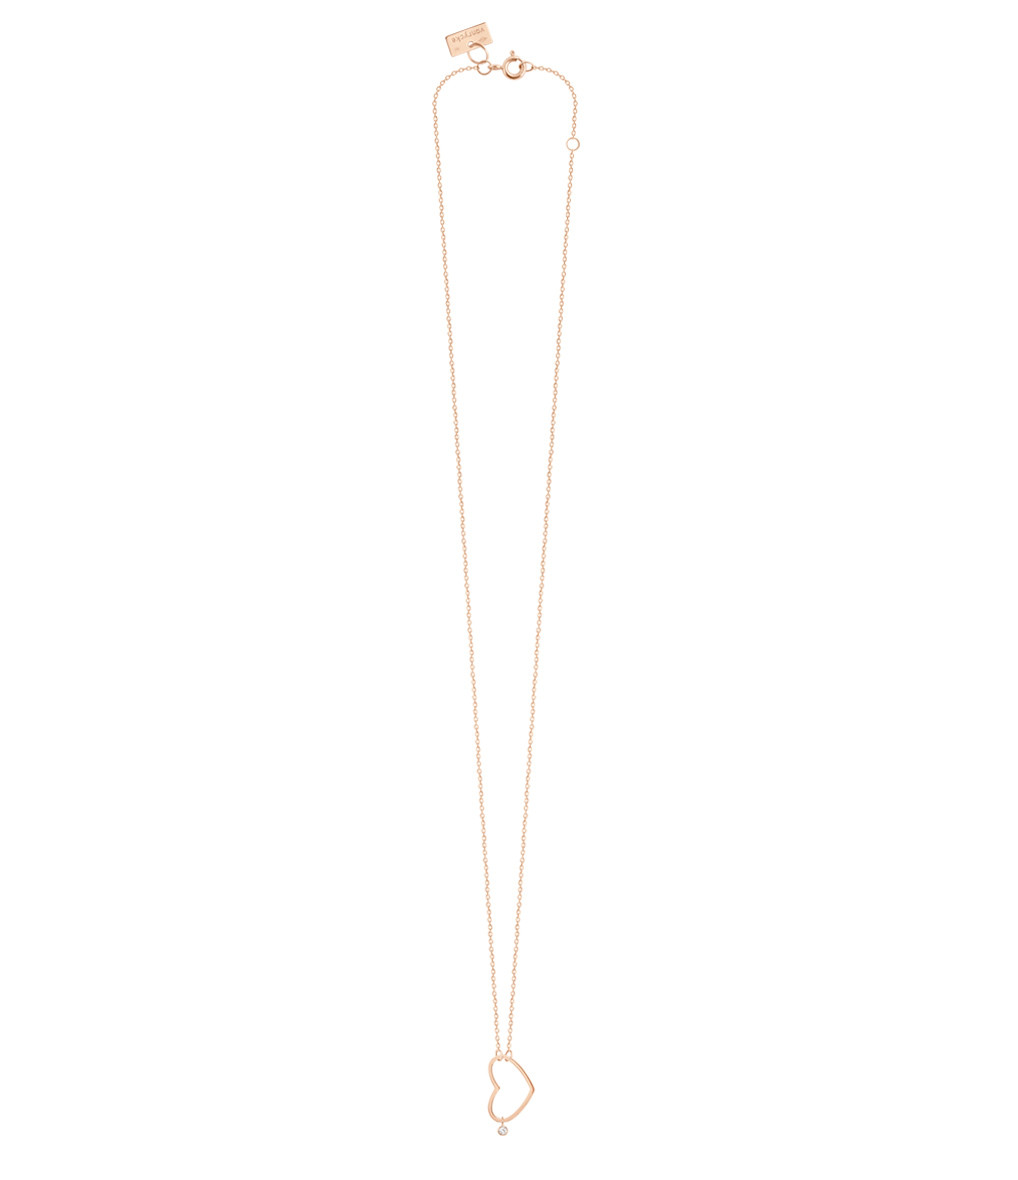 VANRYCKE - Collier Angie Or Rose Diamant S